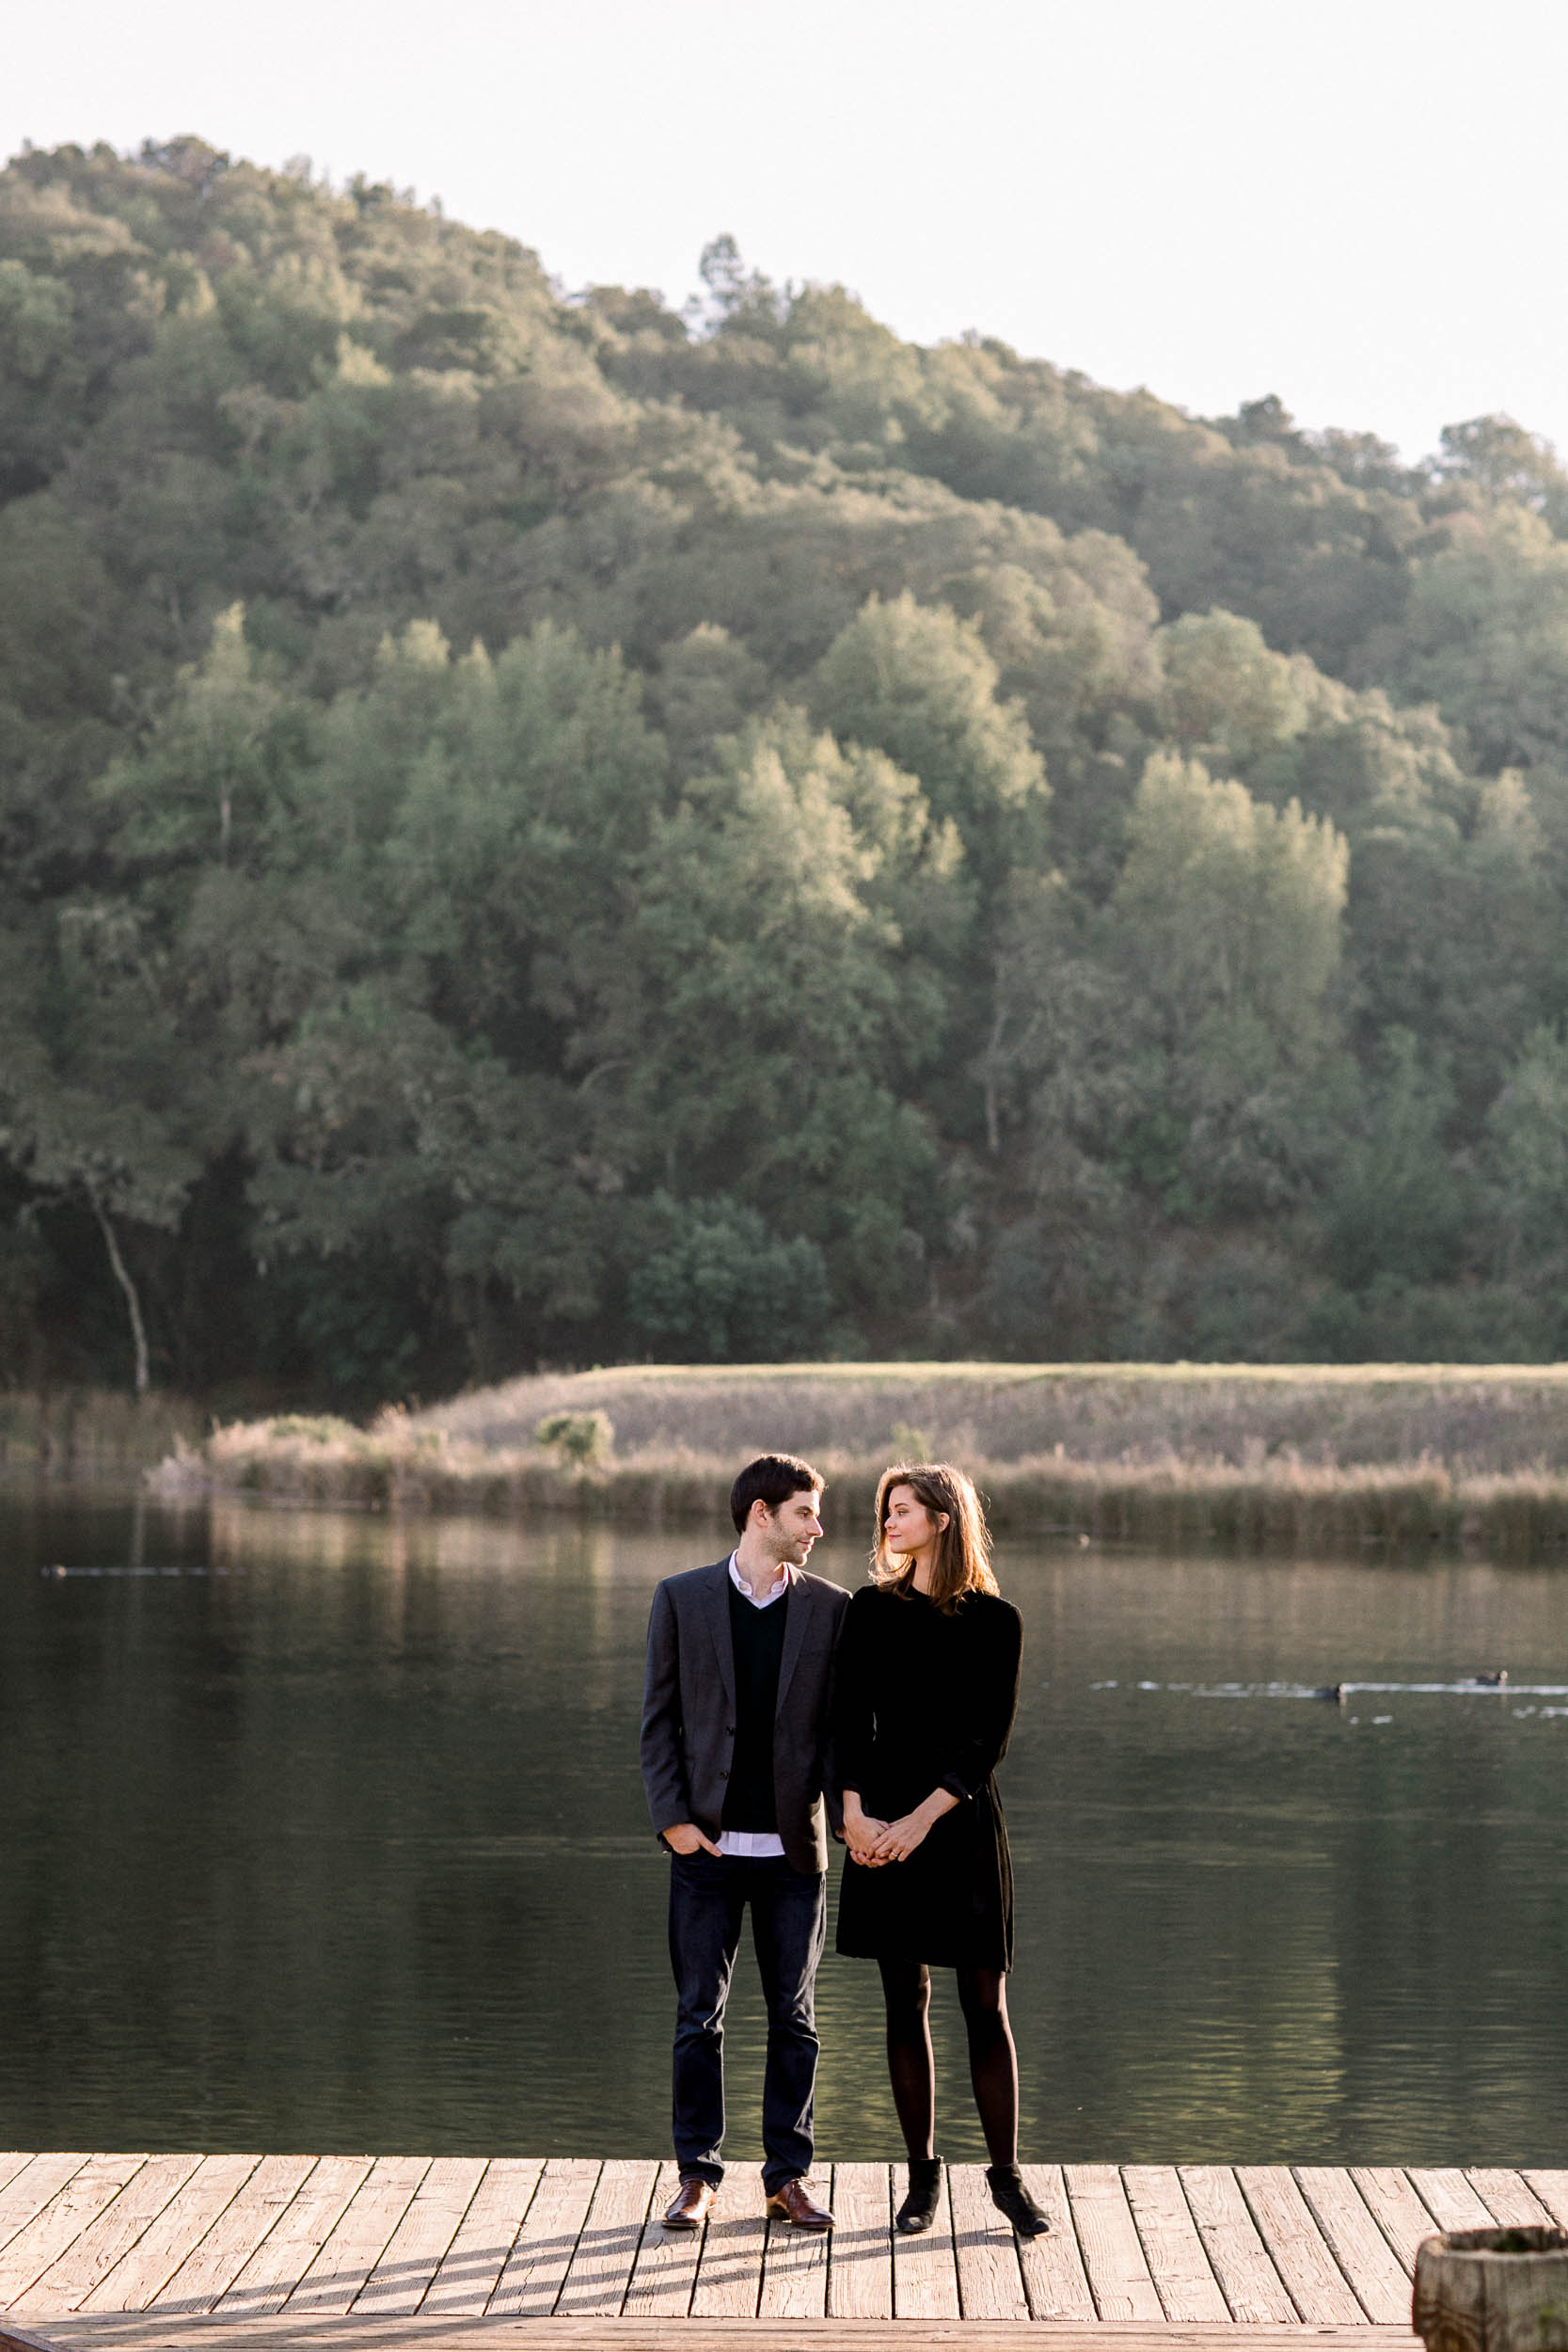 010319_E+J_Foothills Park Engagement_Buena Lane Photography_26.jpg